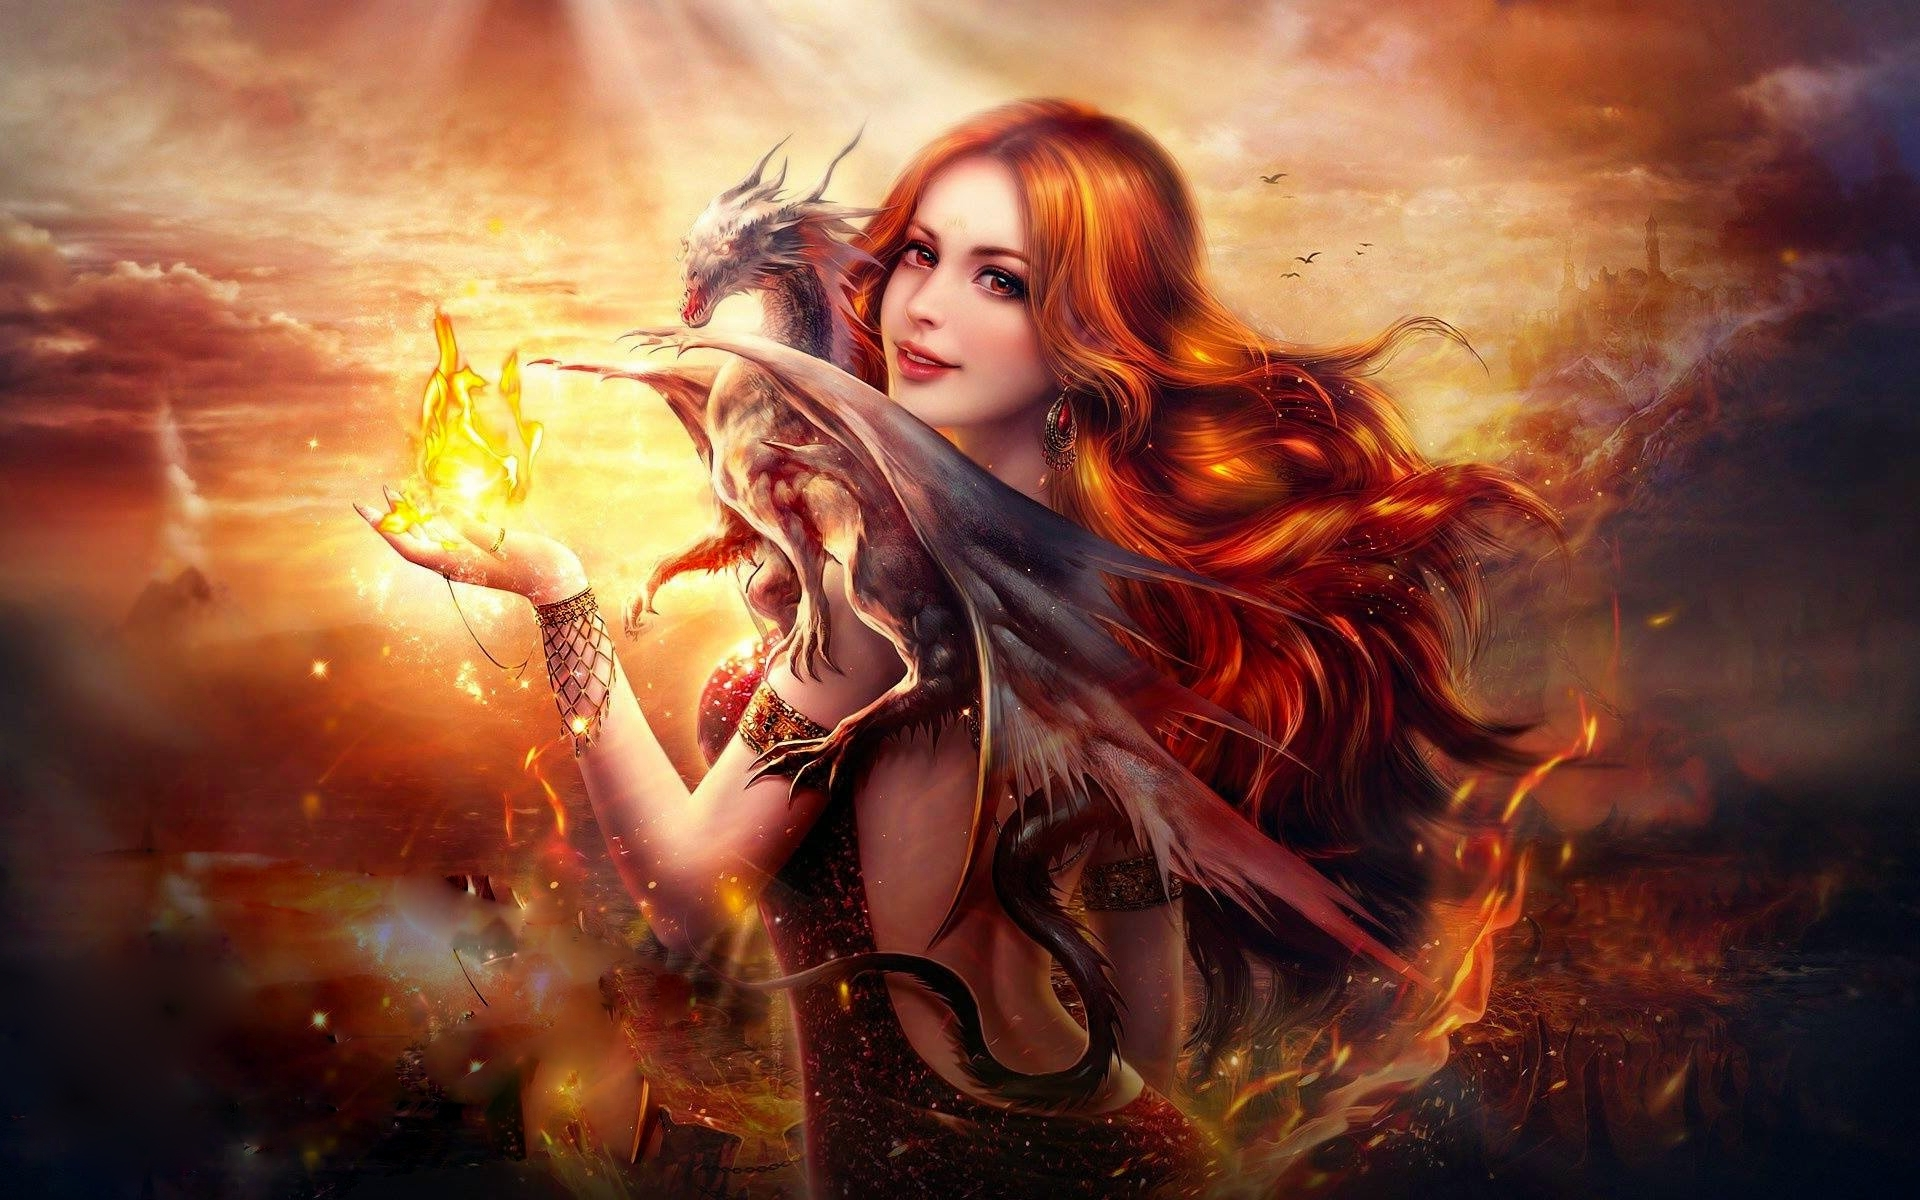 fantasy girl dragon fire, hd fantasy girls, 4k wallpapers, images